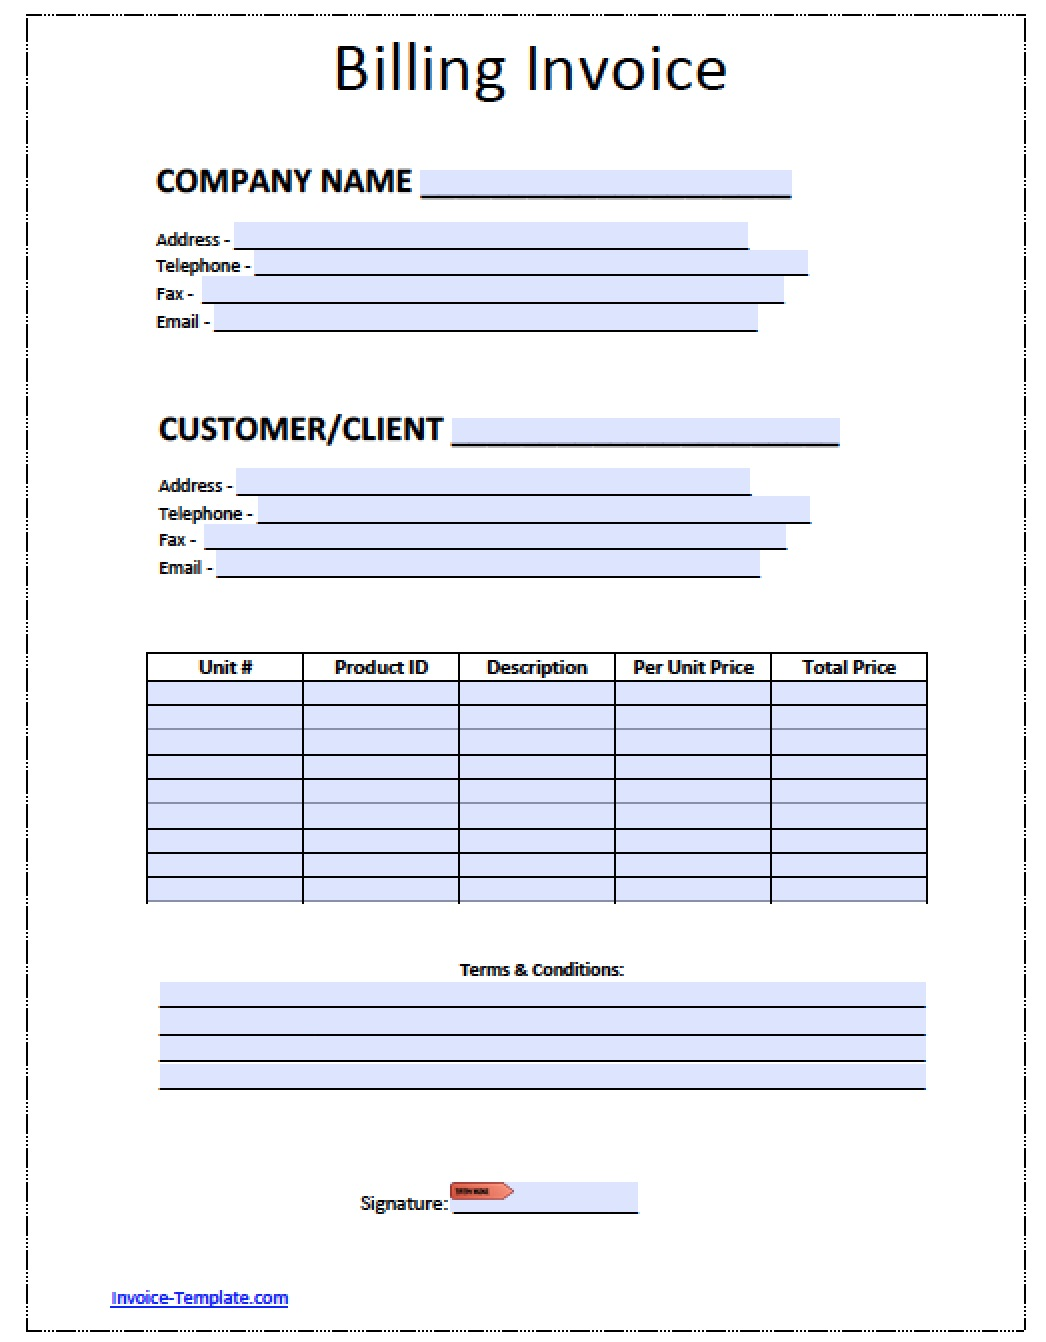 Darkfaderus  Winsome Billing Invoice Invoices Faq U Cloudflare Support Billing  With Luxury Free Billing Invoice Template  Excel  Pdf  Word Doc  Billing With Amazing Nch Software Express Invoice Also What Is A Dealer Invoice In Addition Trucking Invoices And Invoice Tmeplate As Well As Supplier Invoice Additionally Invoice Format Excel From Happytomco With Darkfaderus  Luxury Billing Invoice Invoices Faq U Cloudflare Support Billing  With Amazing Free Billing Invoice Template  Excel  Pdf  Word Doc  Billing And Winsome Nch Software Express Invoice Also What Is A Dealer Invoice In Addition Trucking Invoices From Happytomco